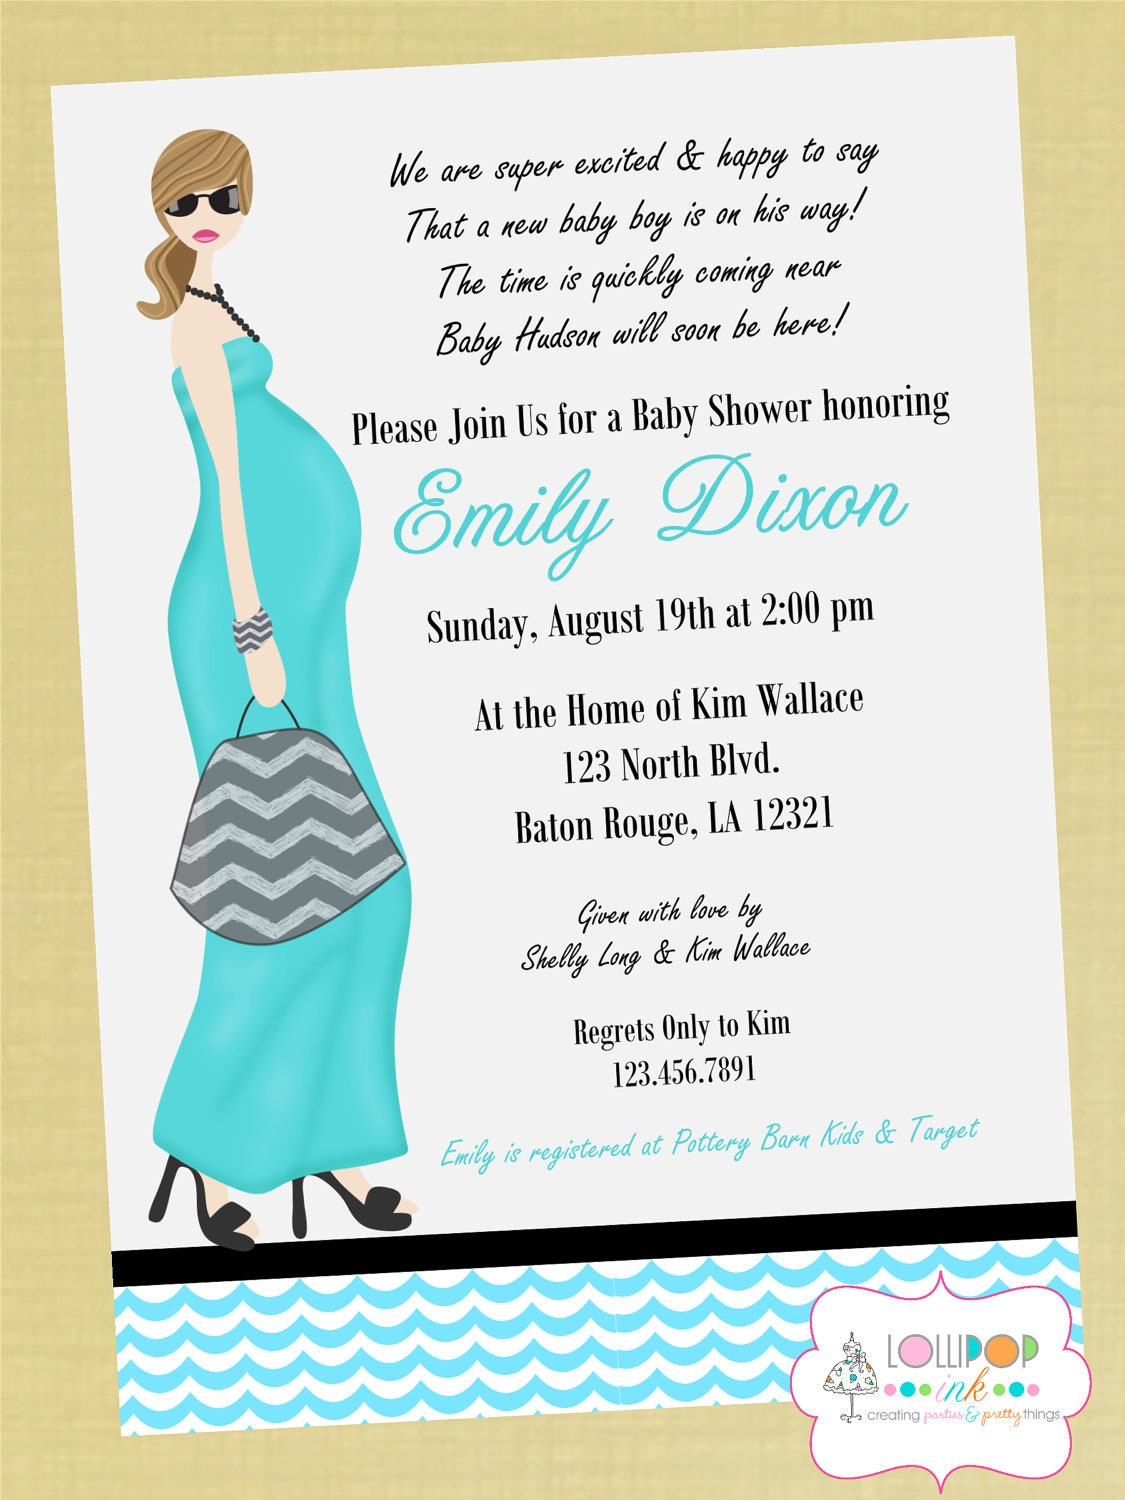 Baby shower invitation words etamemibawa baby shower invitation words filmwisefo Image collections